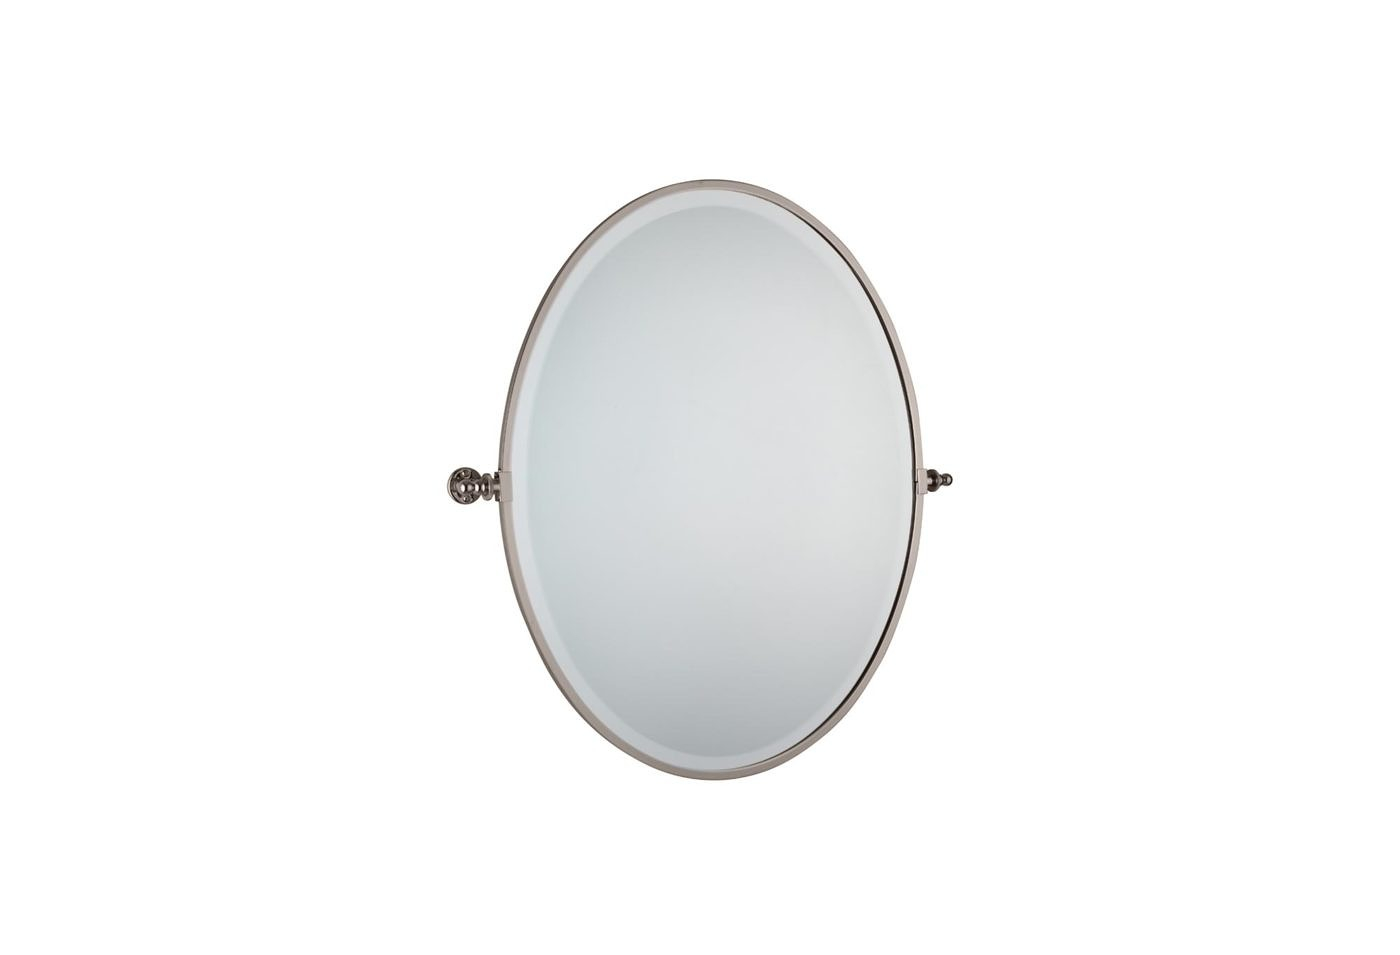 Luxury Wall Mounted Oval Bathroom Mirror Layjao